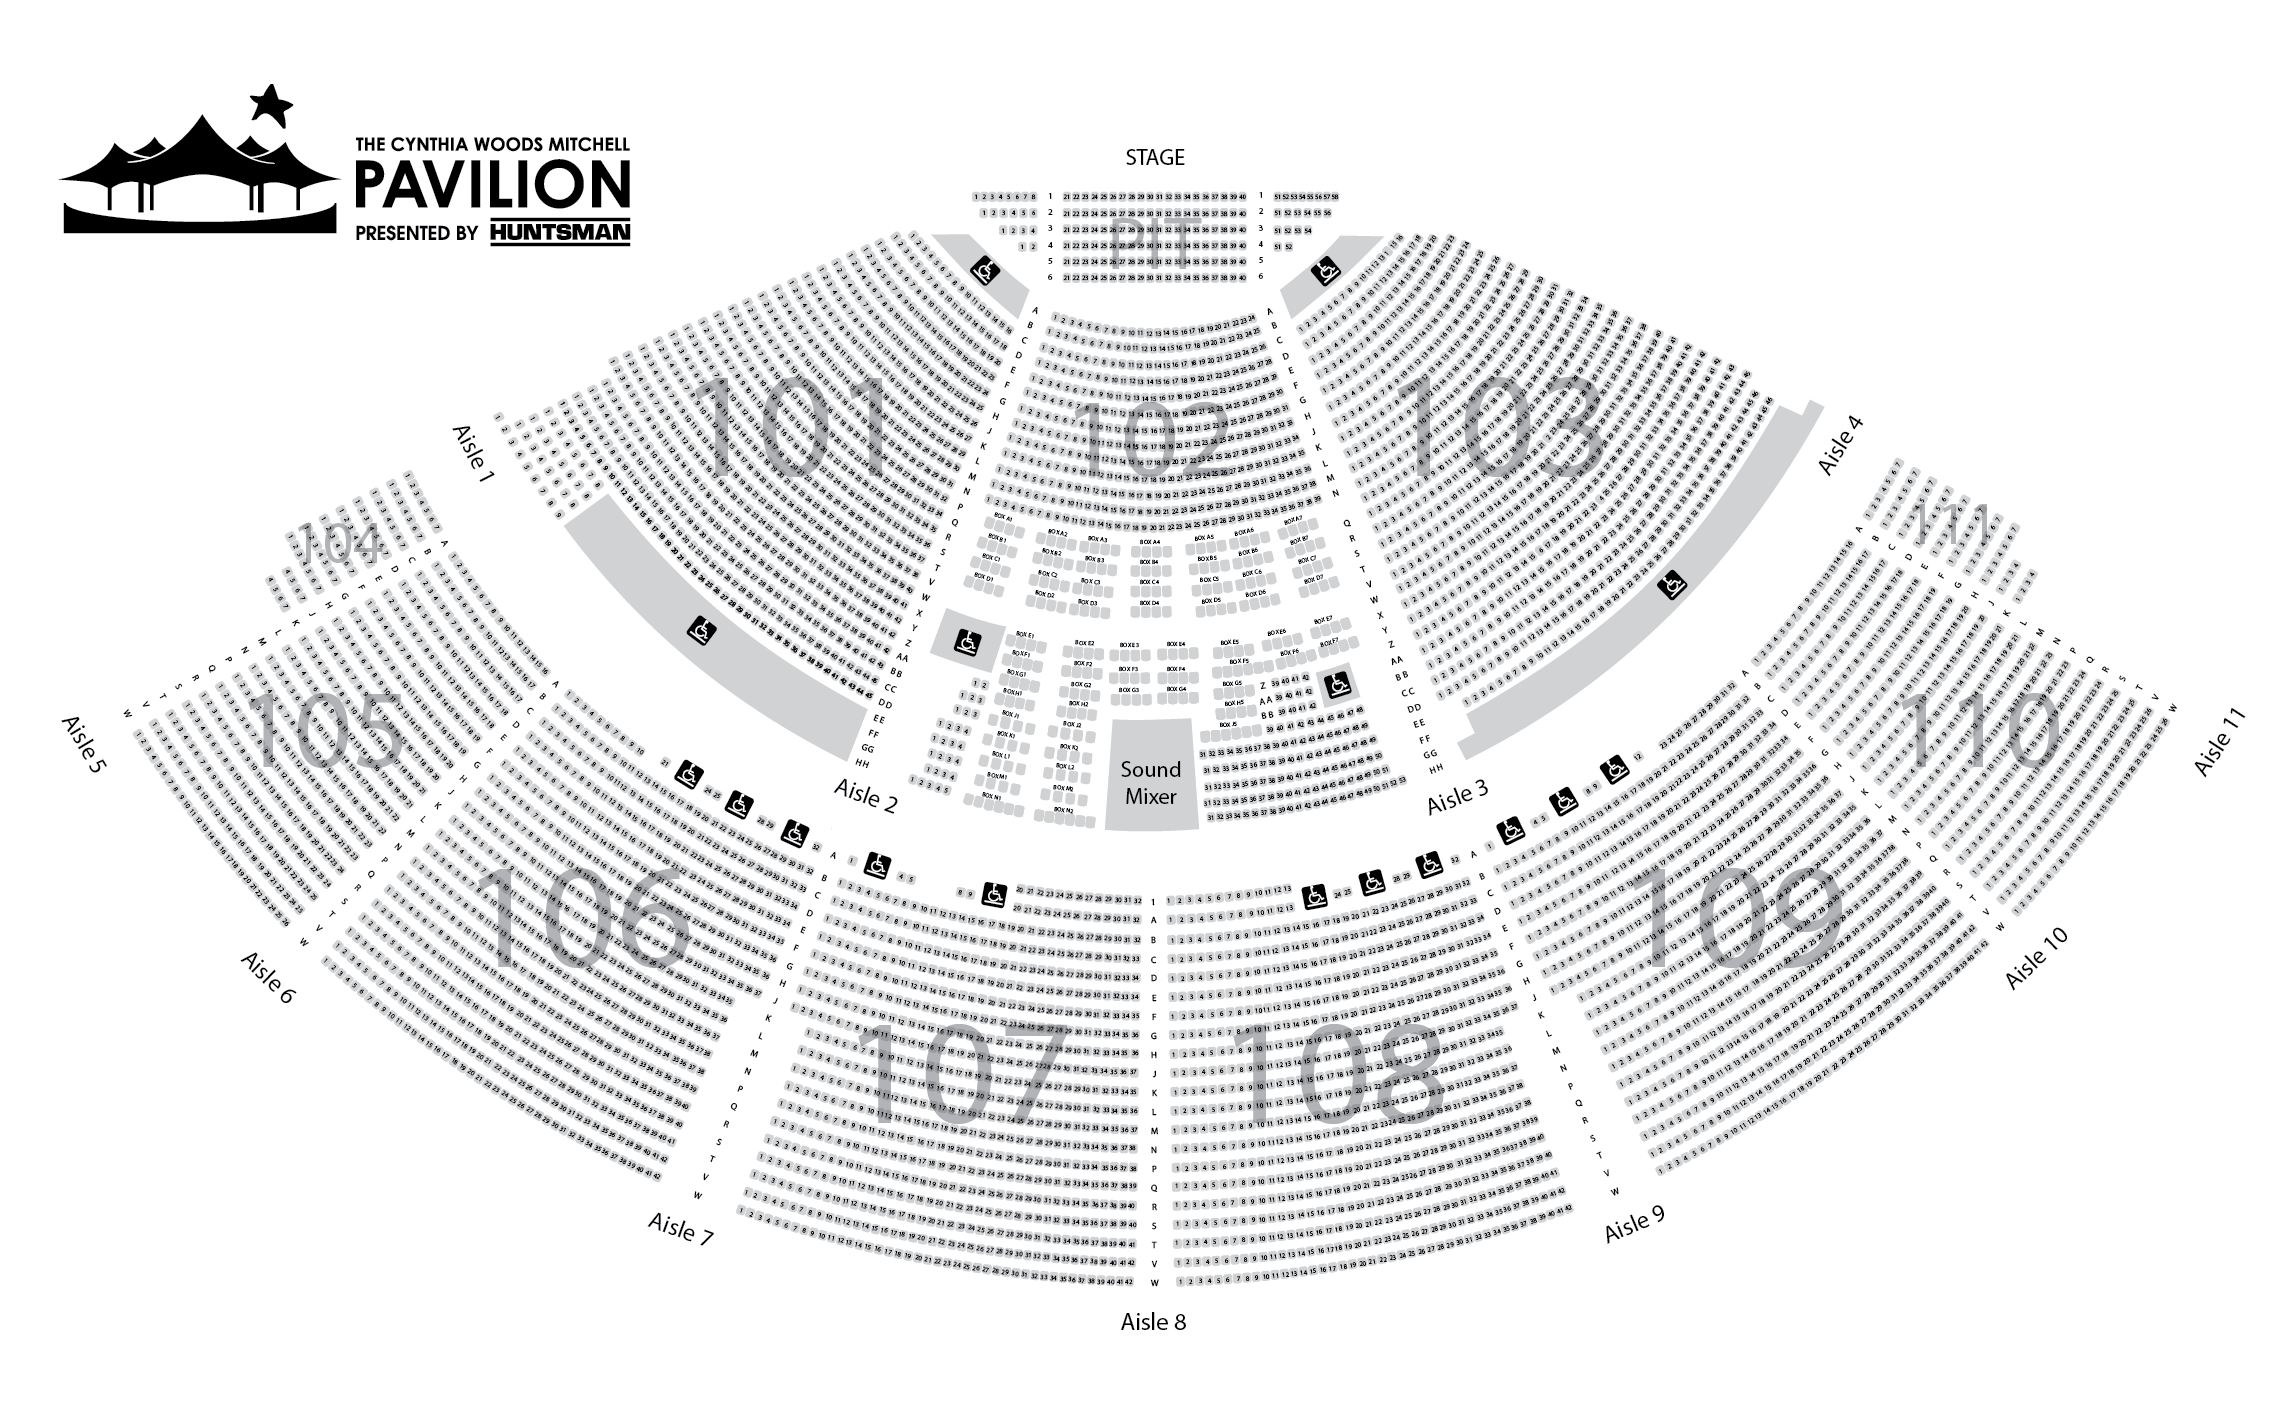 Pavilion Seating Chart